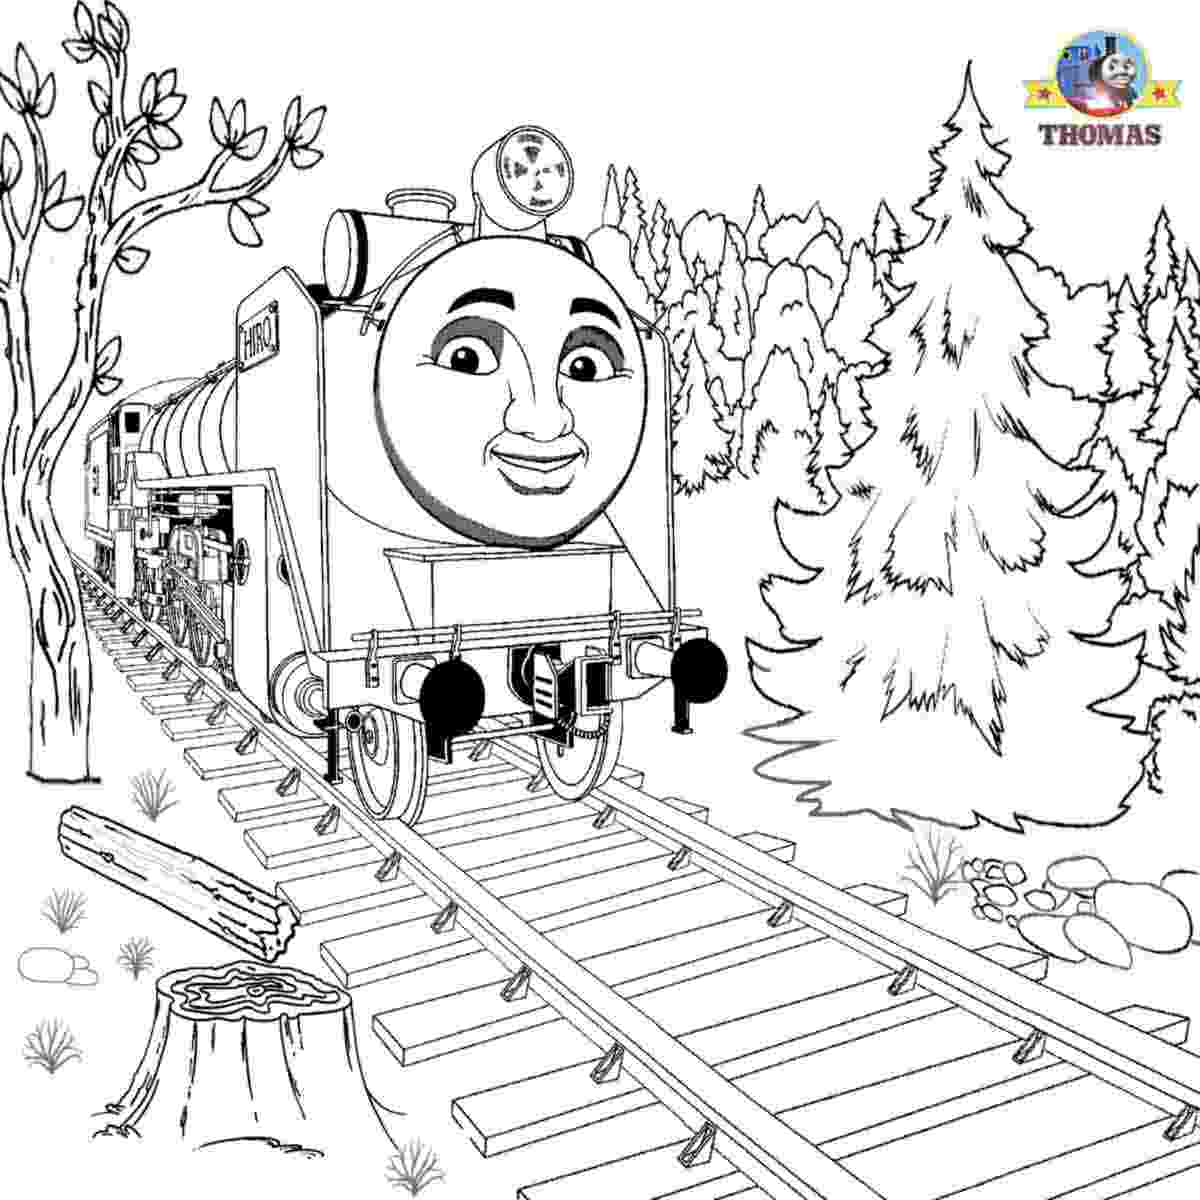 thomas and friends coloring pages percy from thomas friends coloring page free printable coloring friends thomas and pages